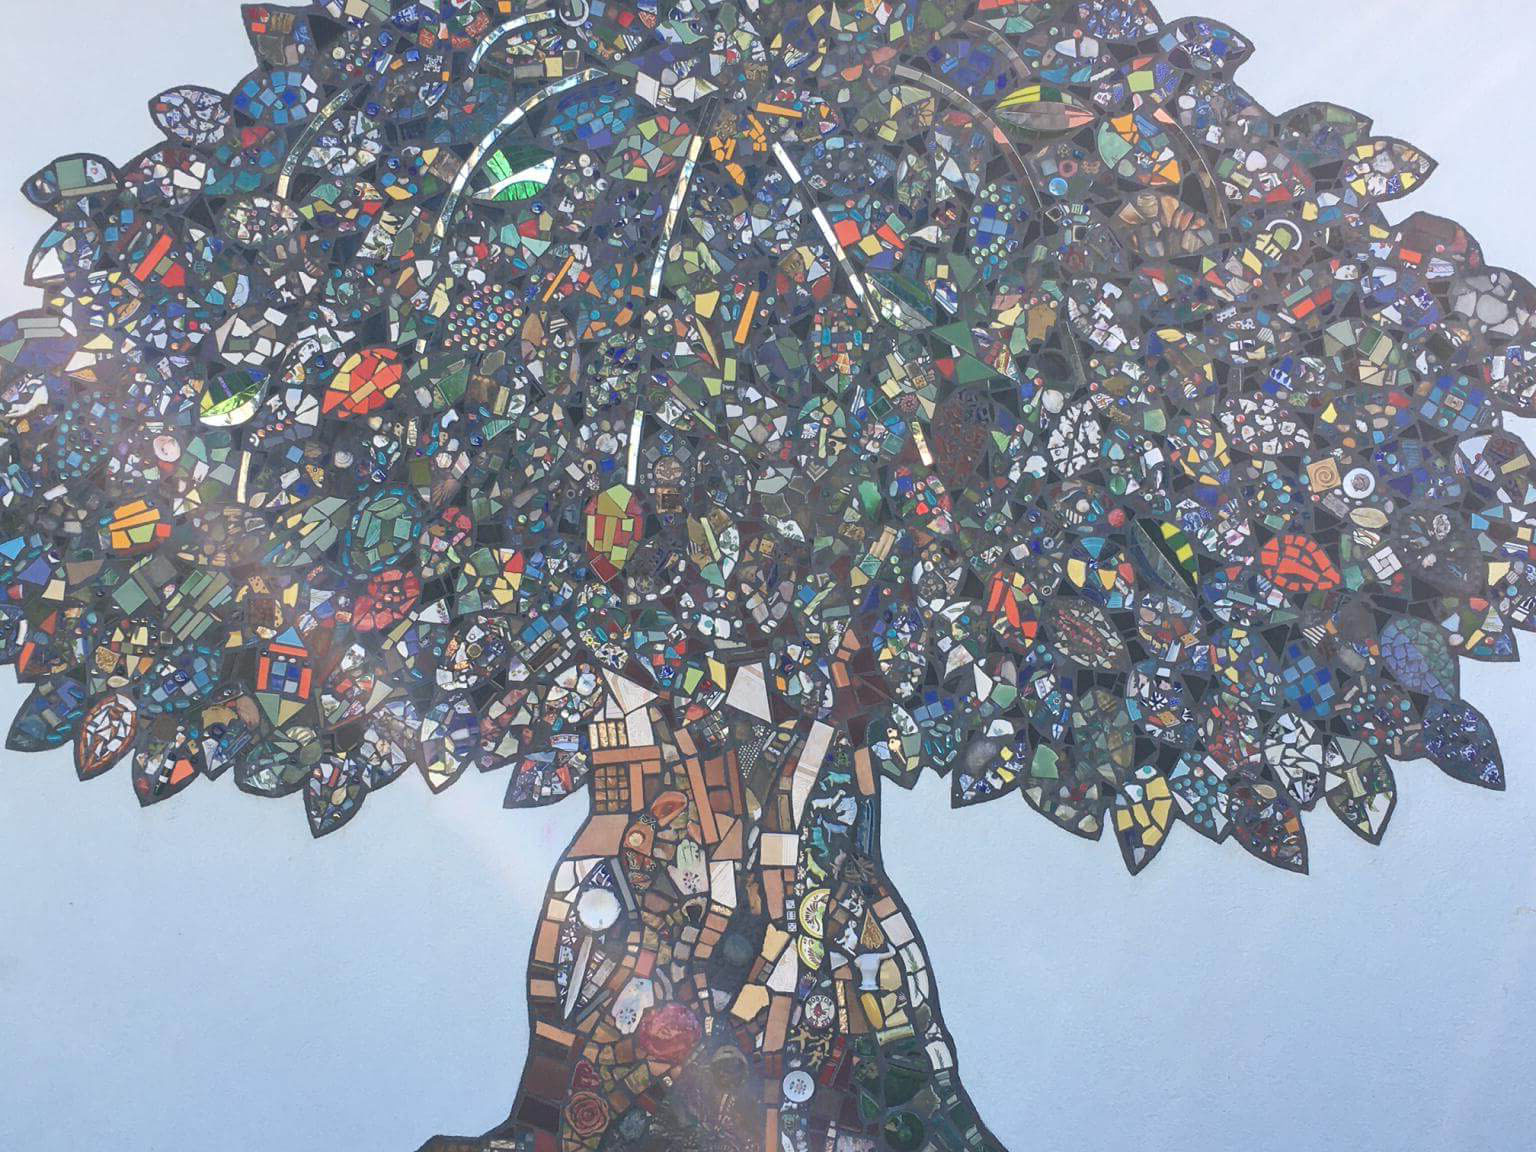 A mosaic--made with many pieces of broken glass--forming large tree.